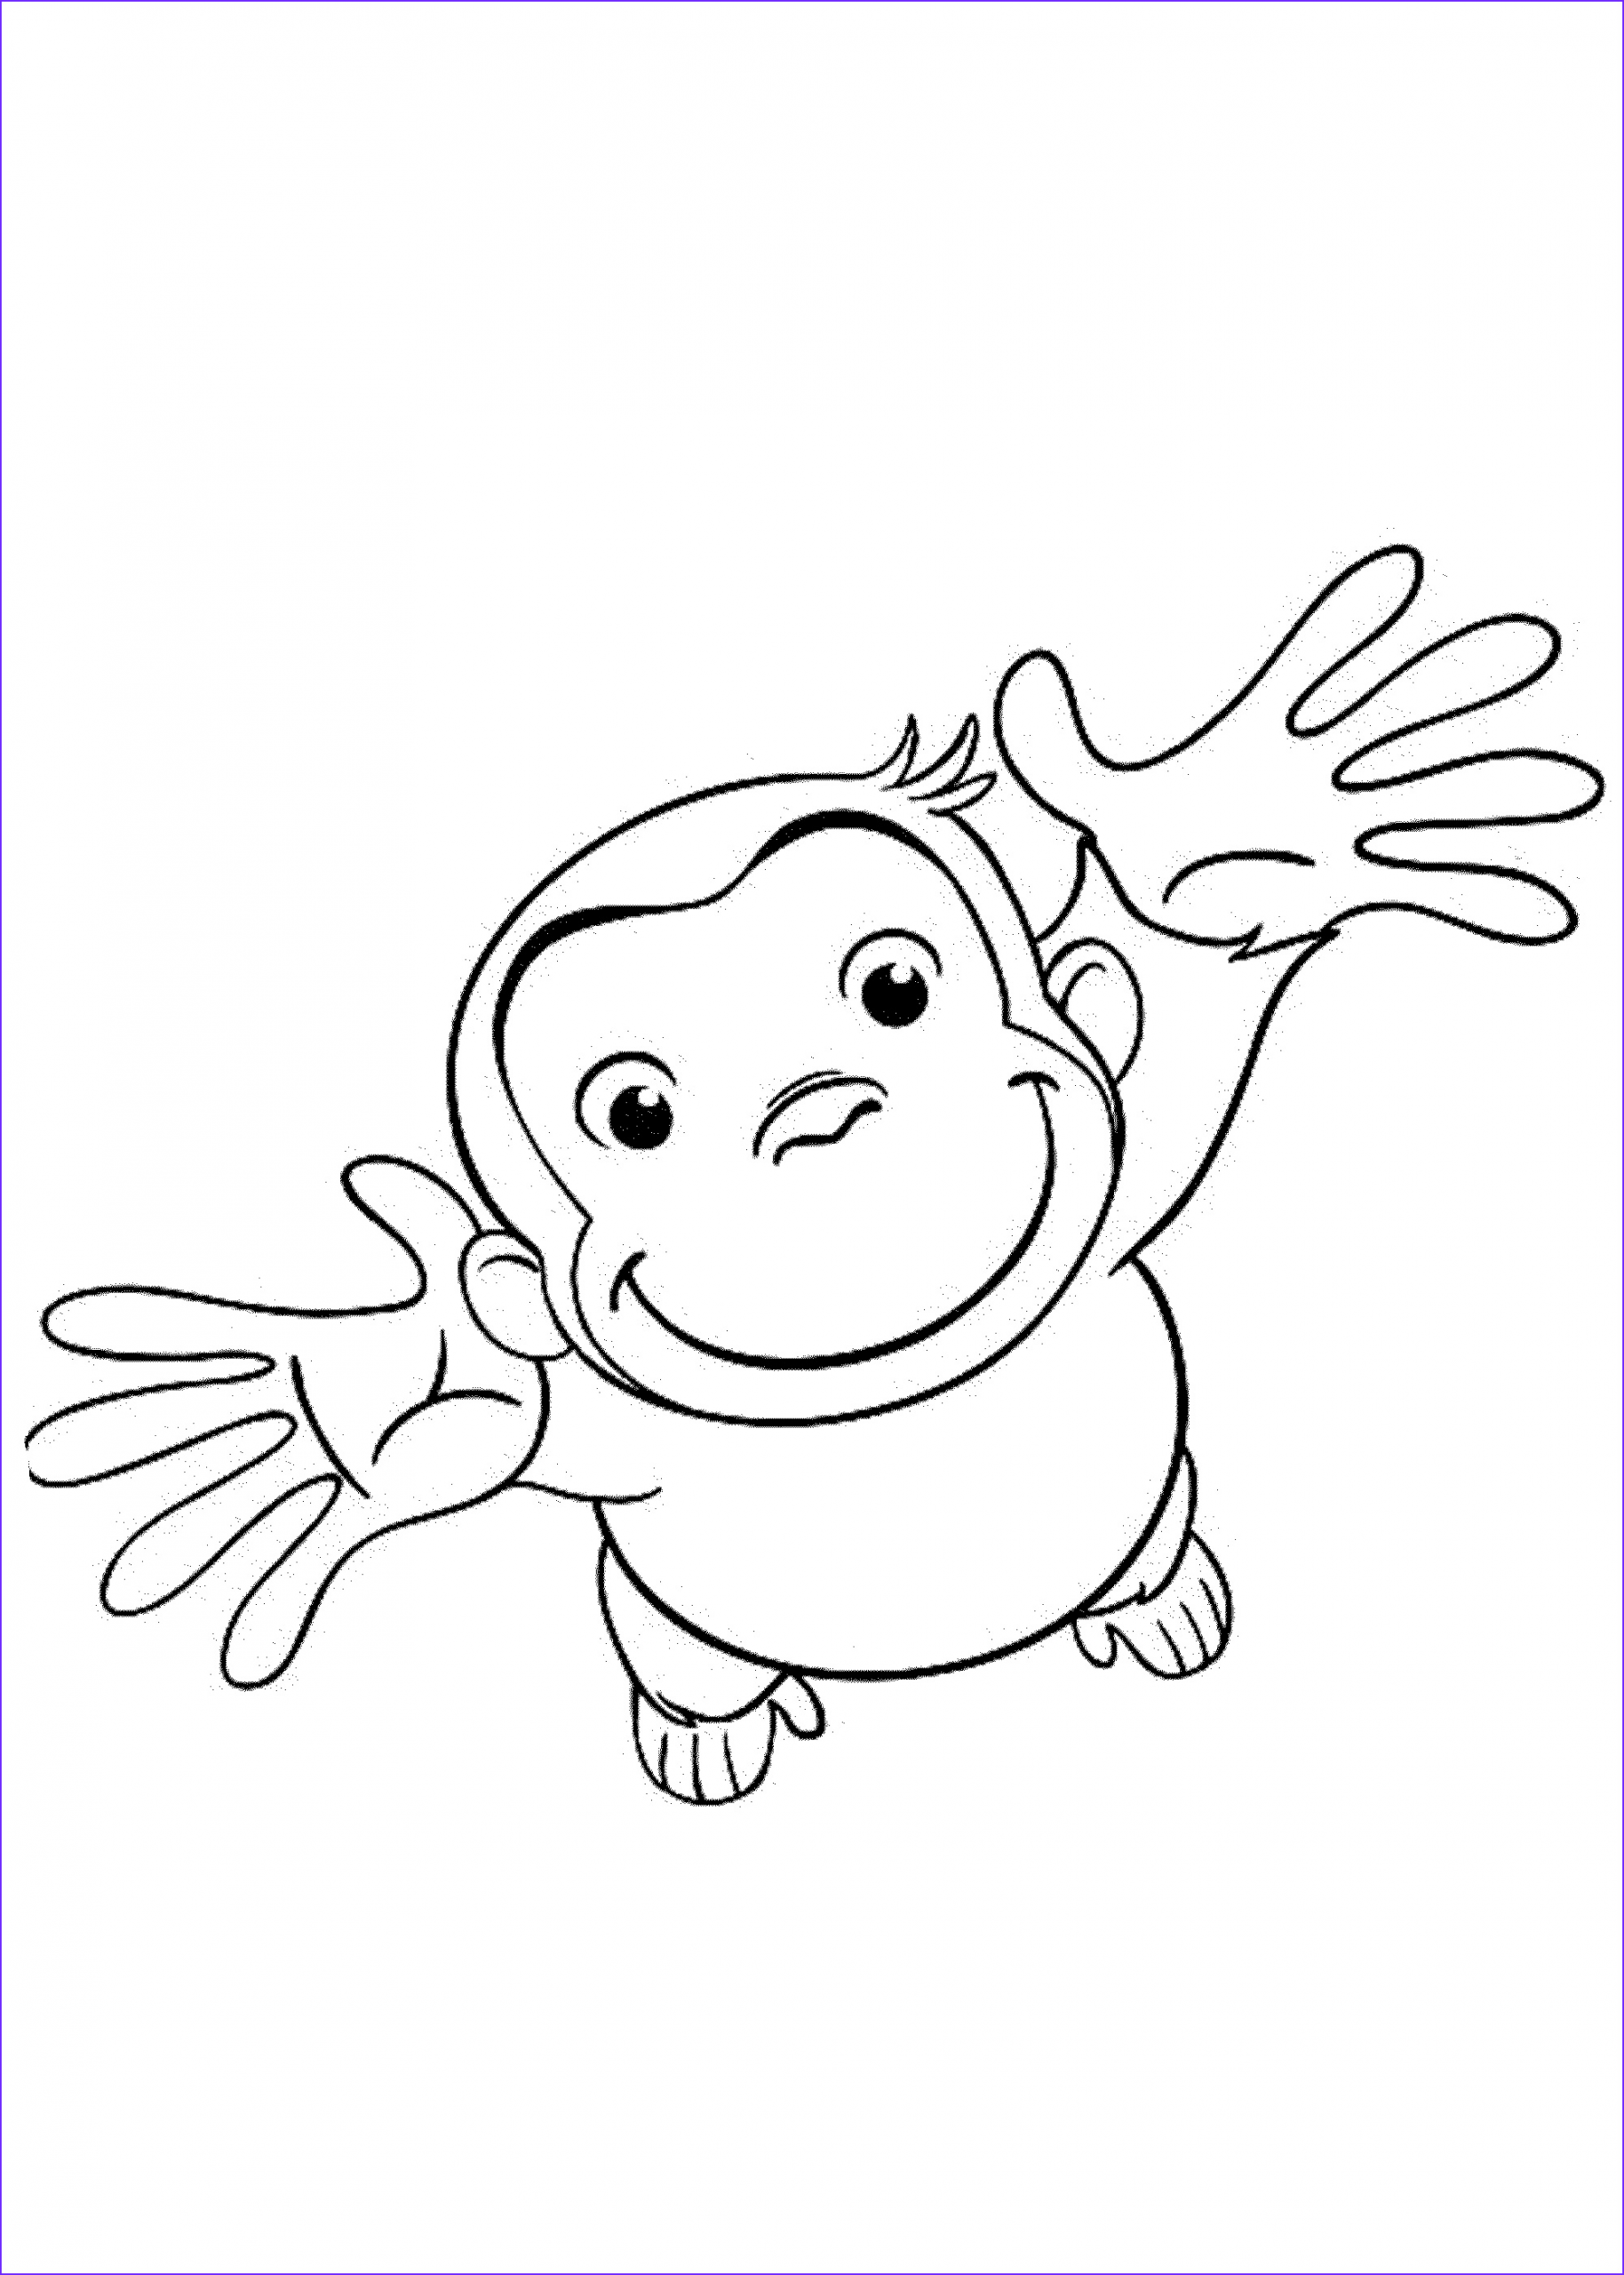 Printable Coloring Page Luxury Photos Curious George Coloring Pages Best Coloring Pages for Kids